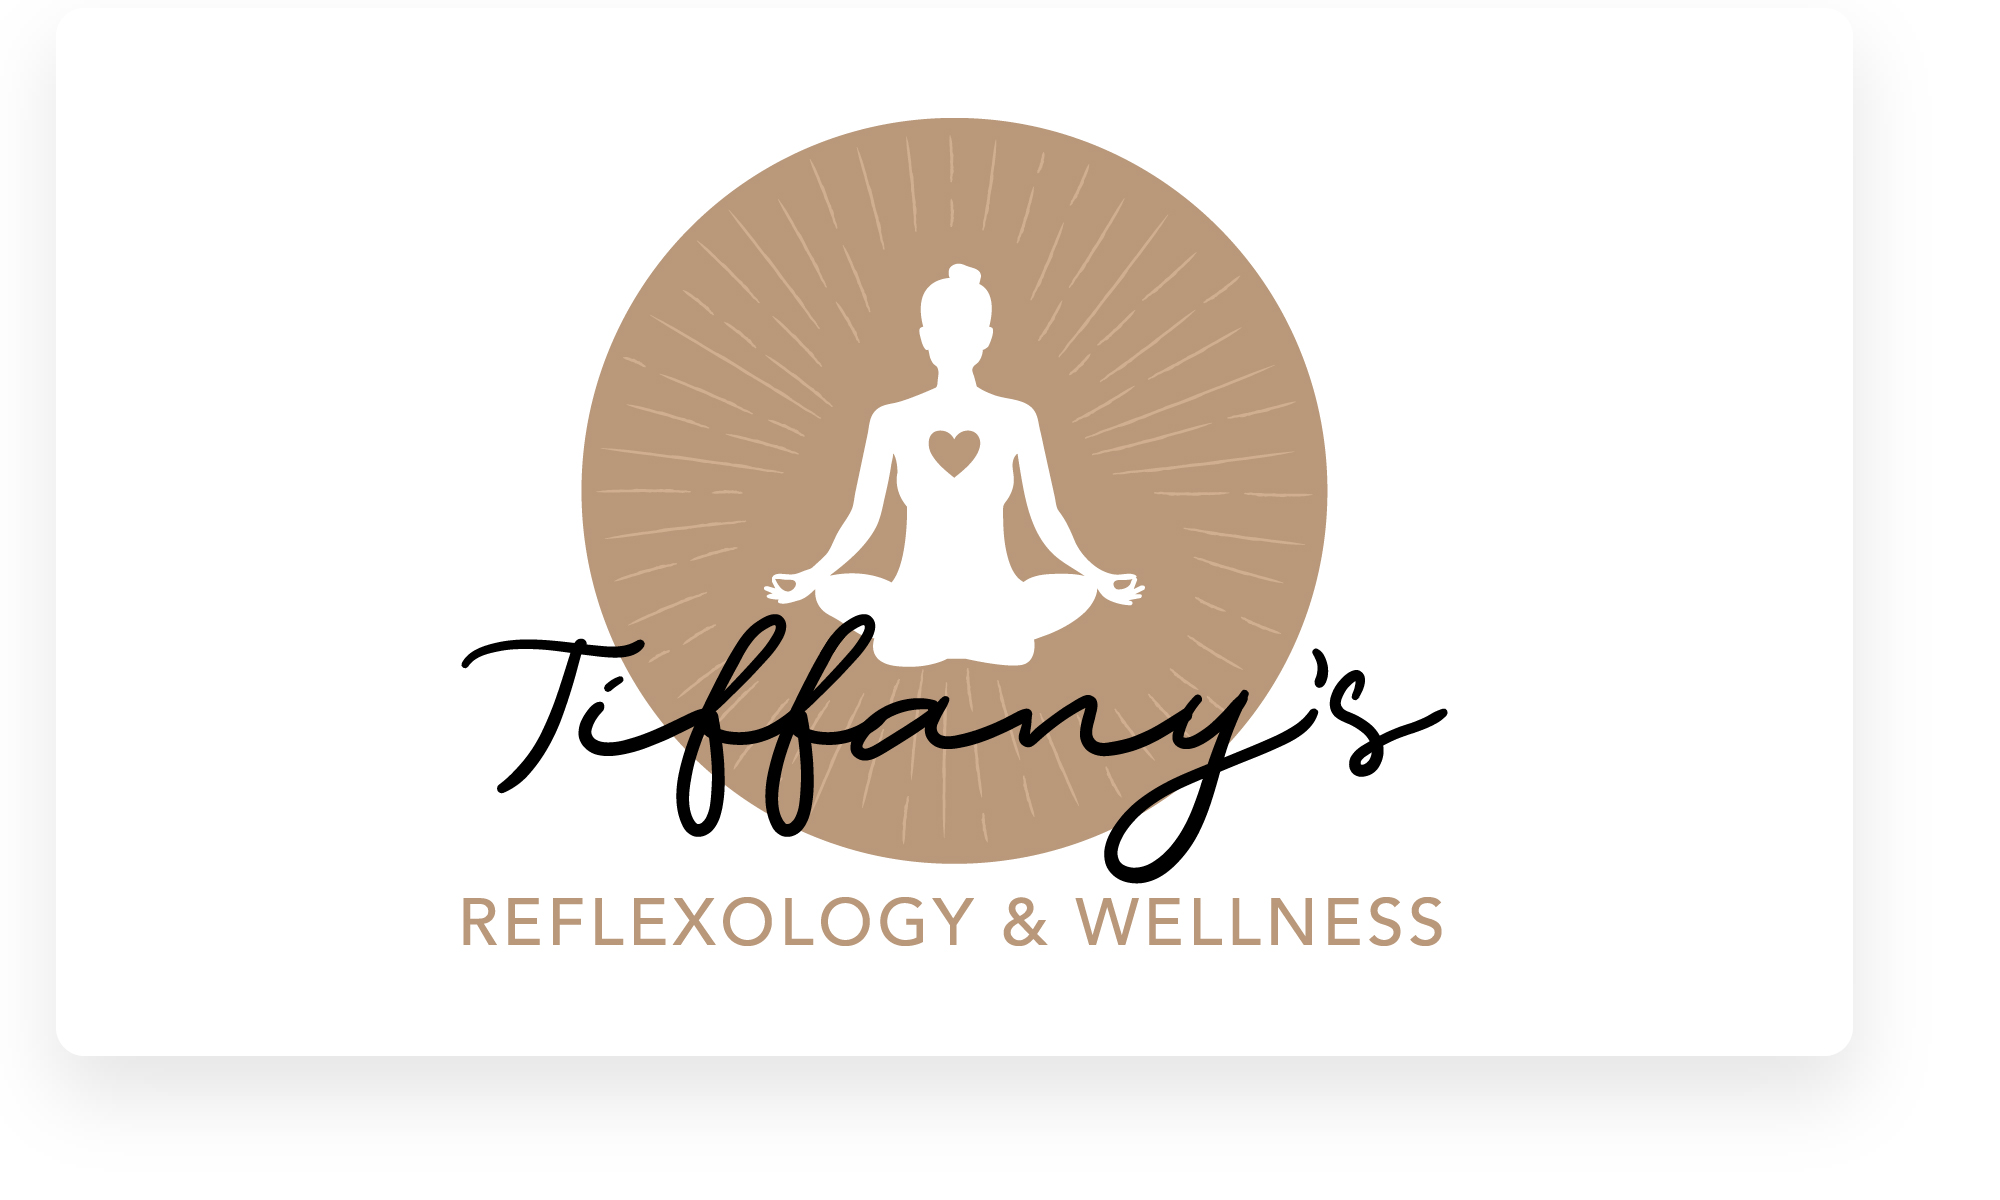 Tiffany_s_Reflexology_and_Wellness.jpg